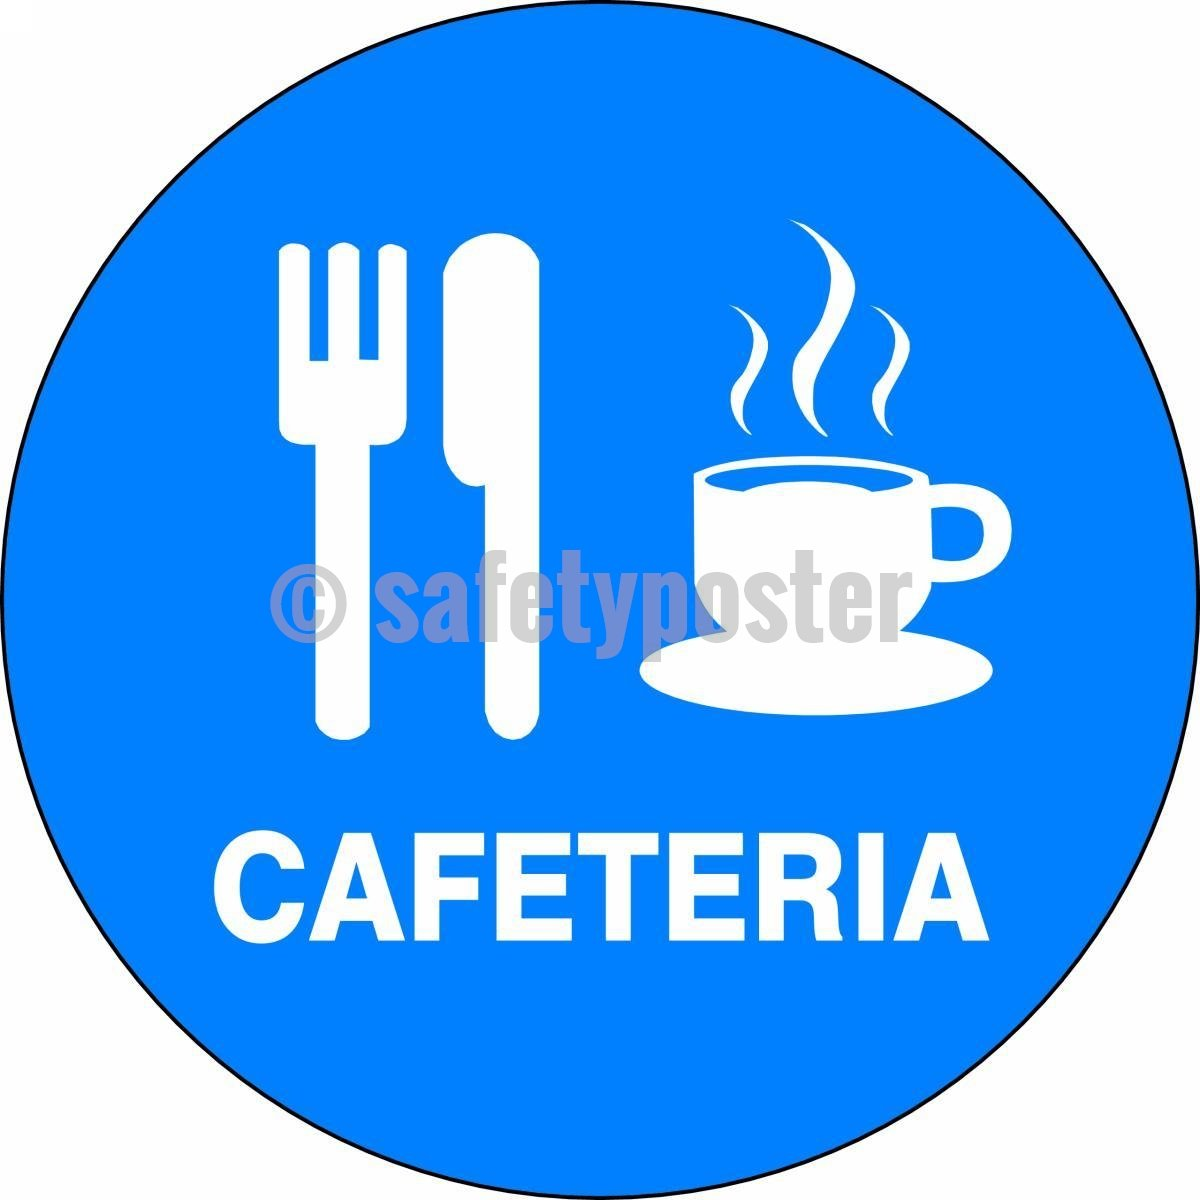 Cafeteria - Floor Sign Adhesive Signs